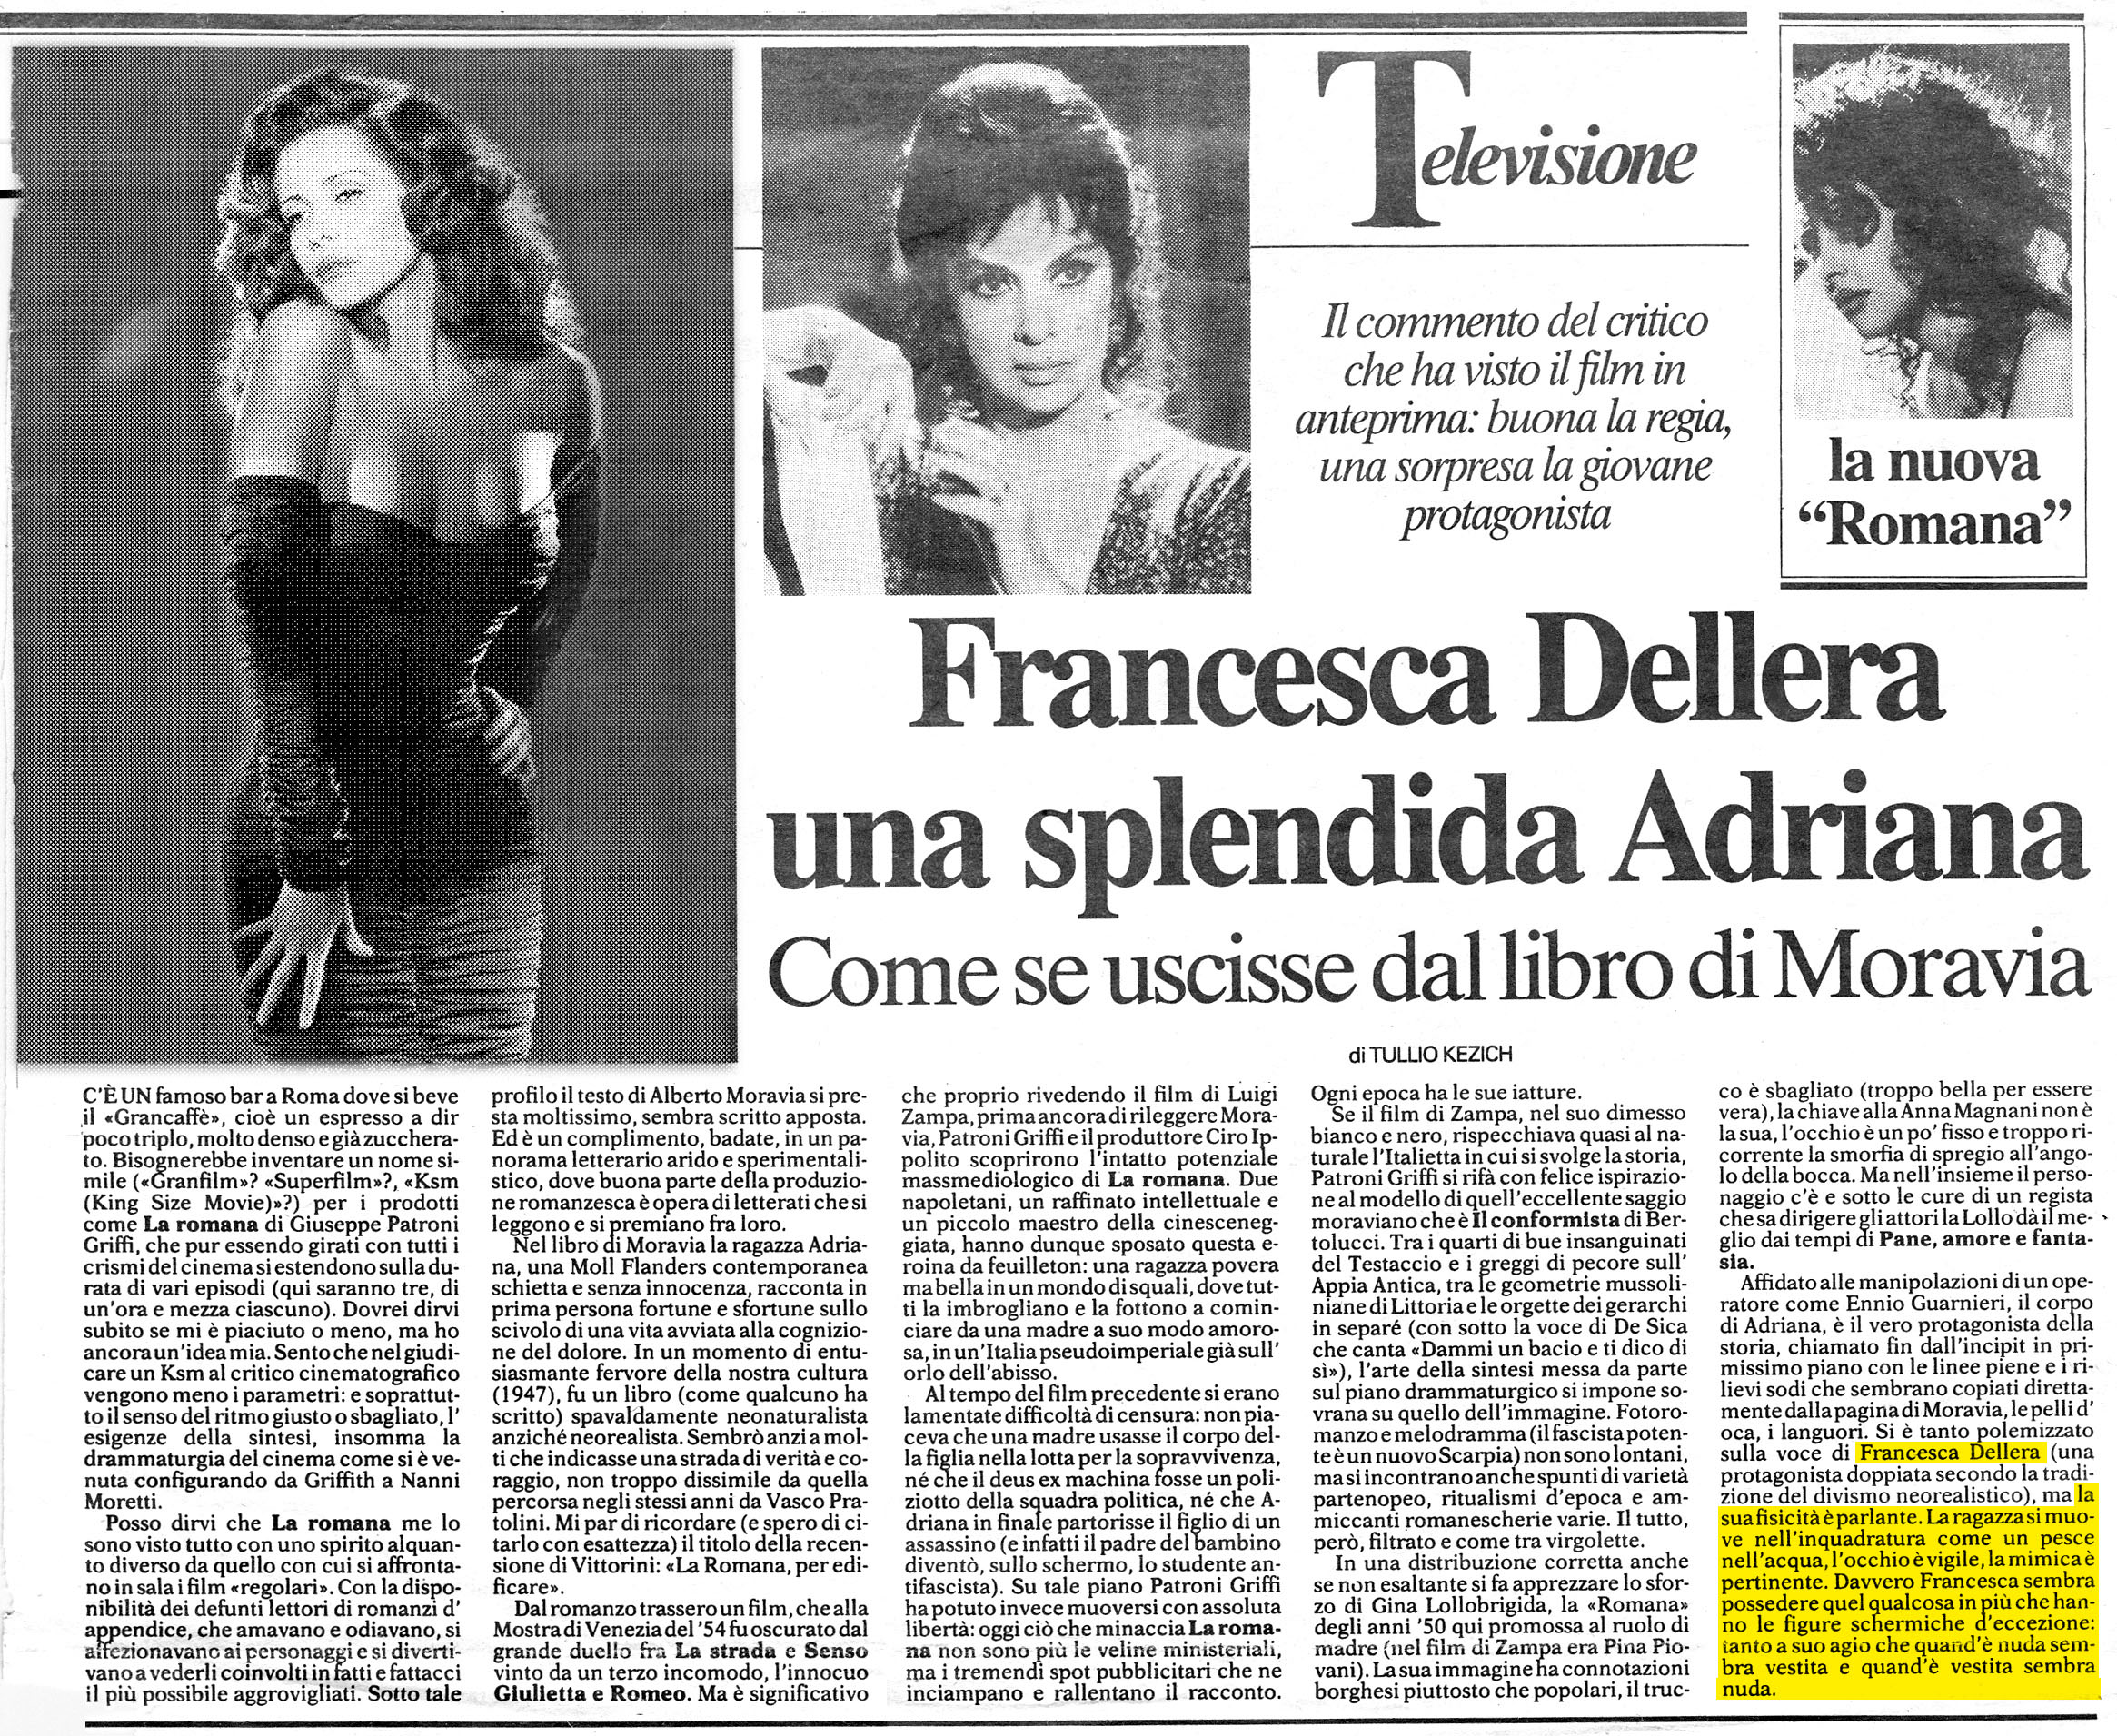 Francesca Dellera una splendida Adriana nel film La romana tratto da un romanzo di Alberto Moravia Francesca Dellera is Adriana in the film La romana from a novel by Alberto Moravia